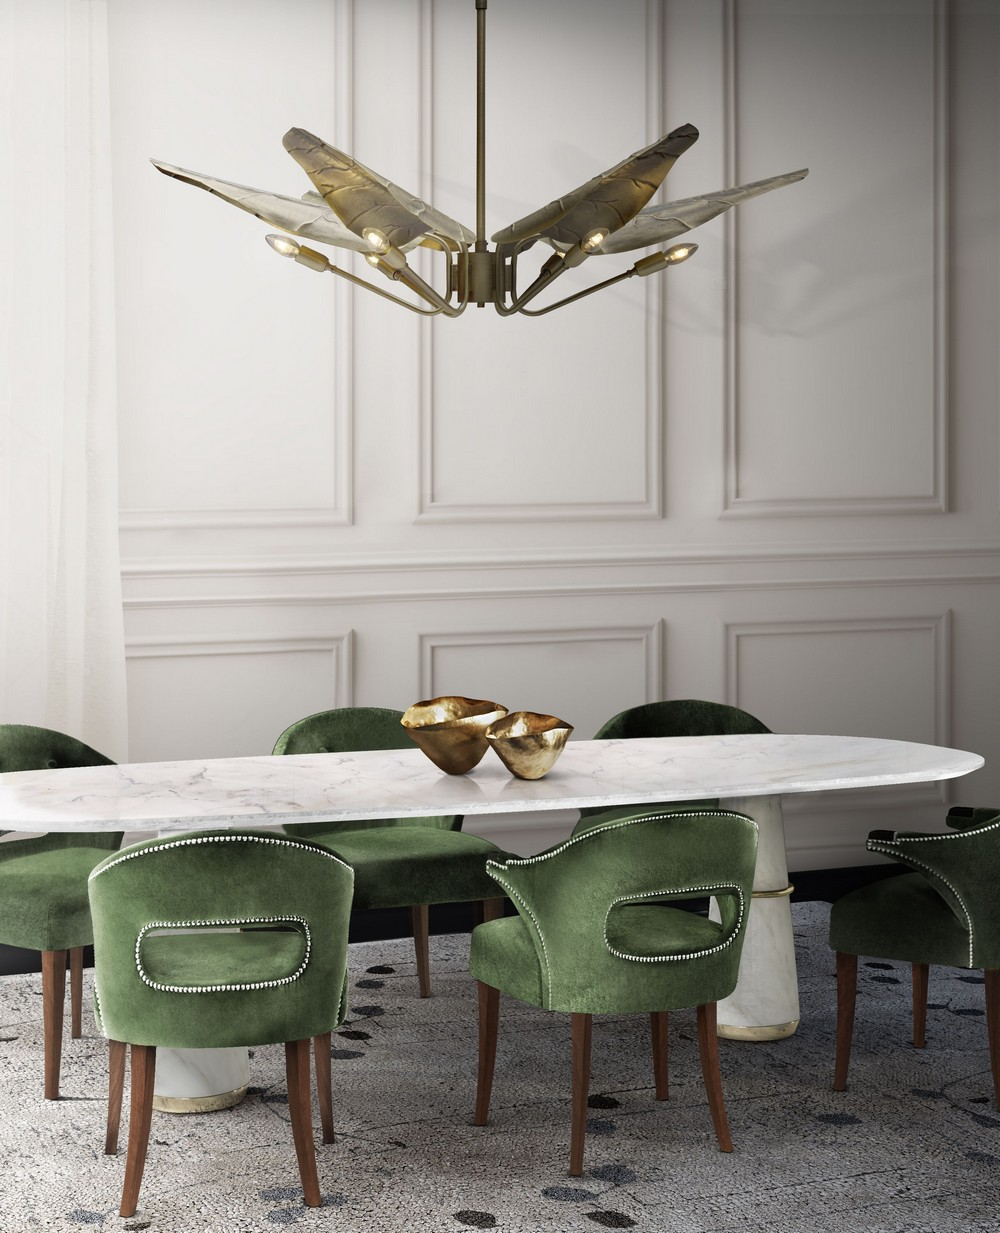 Luxury Dining Tables For Thanksgiving Day luxury dining tables Luxury Dining Tables For Thanksgiving Day jCj5EzzA